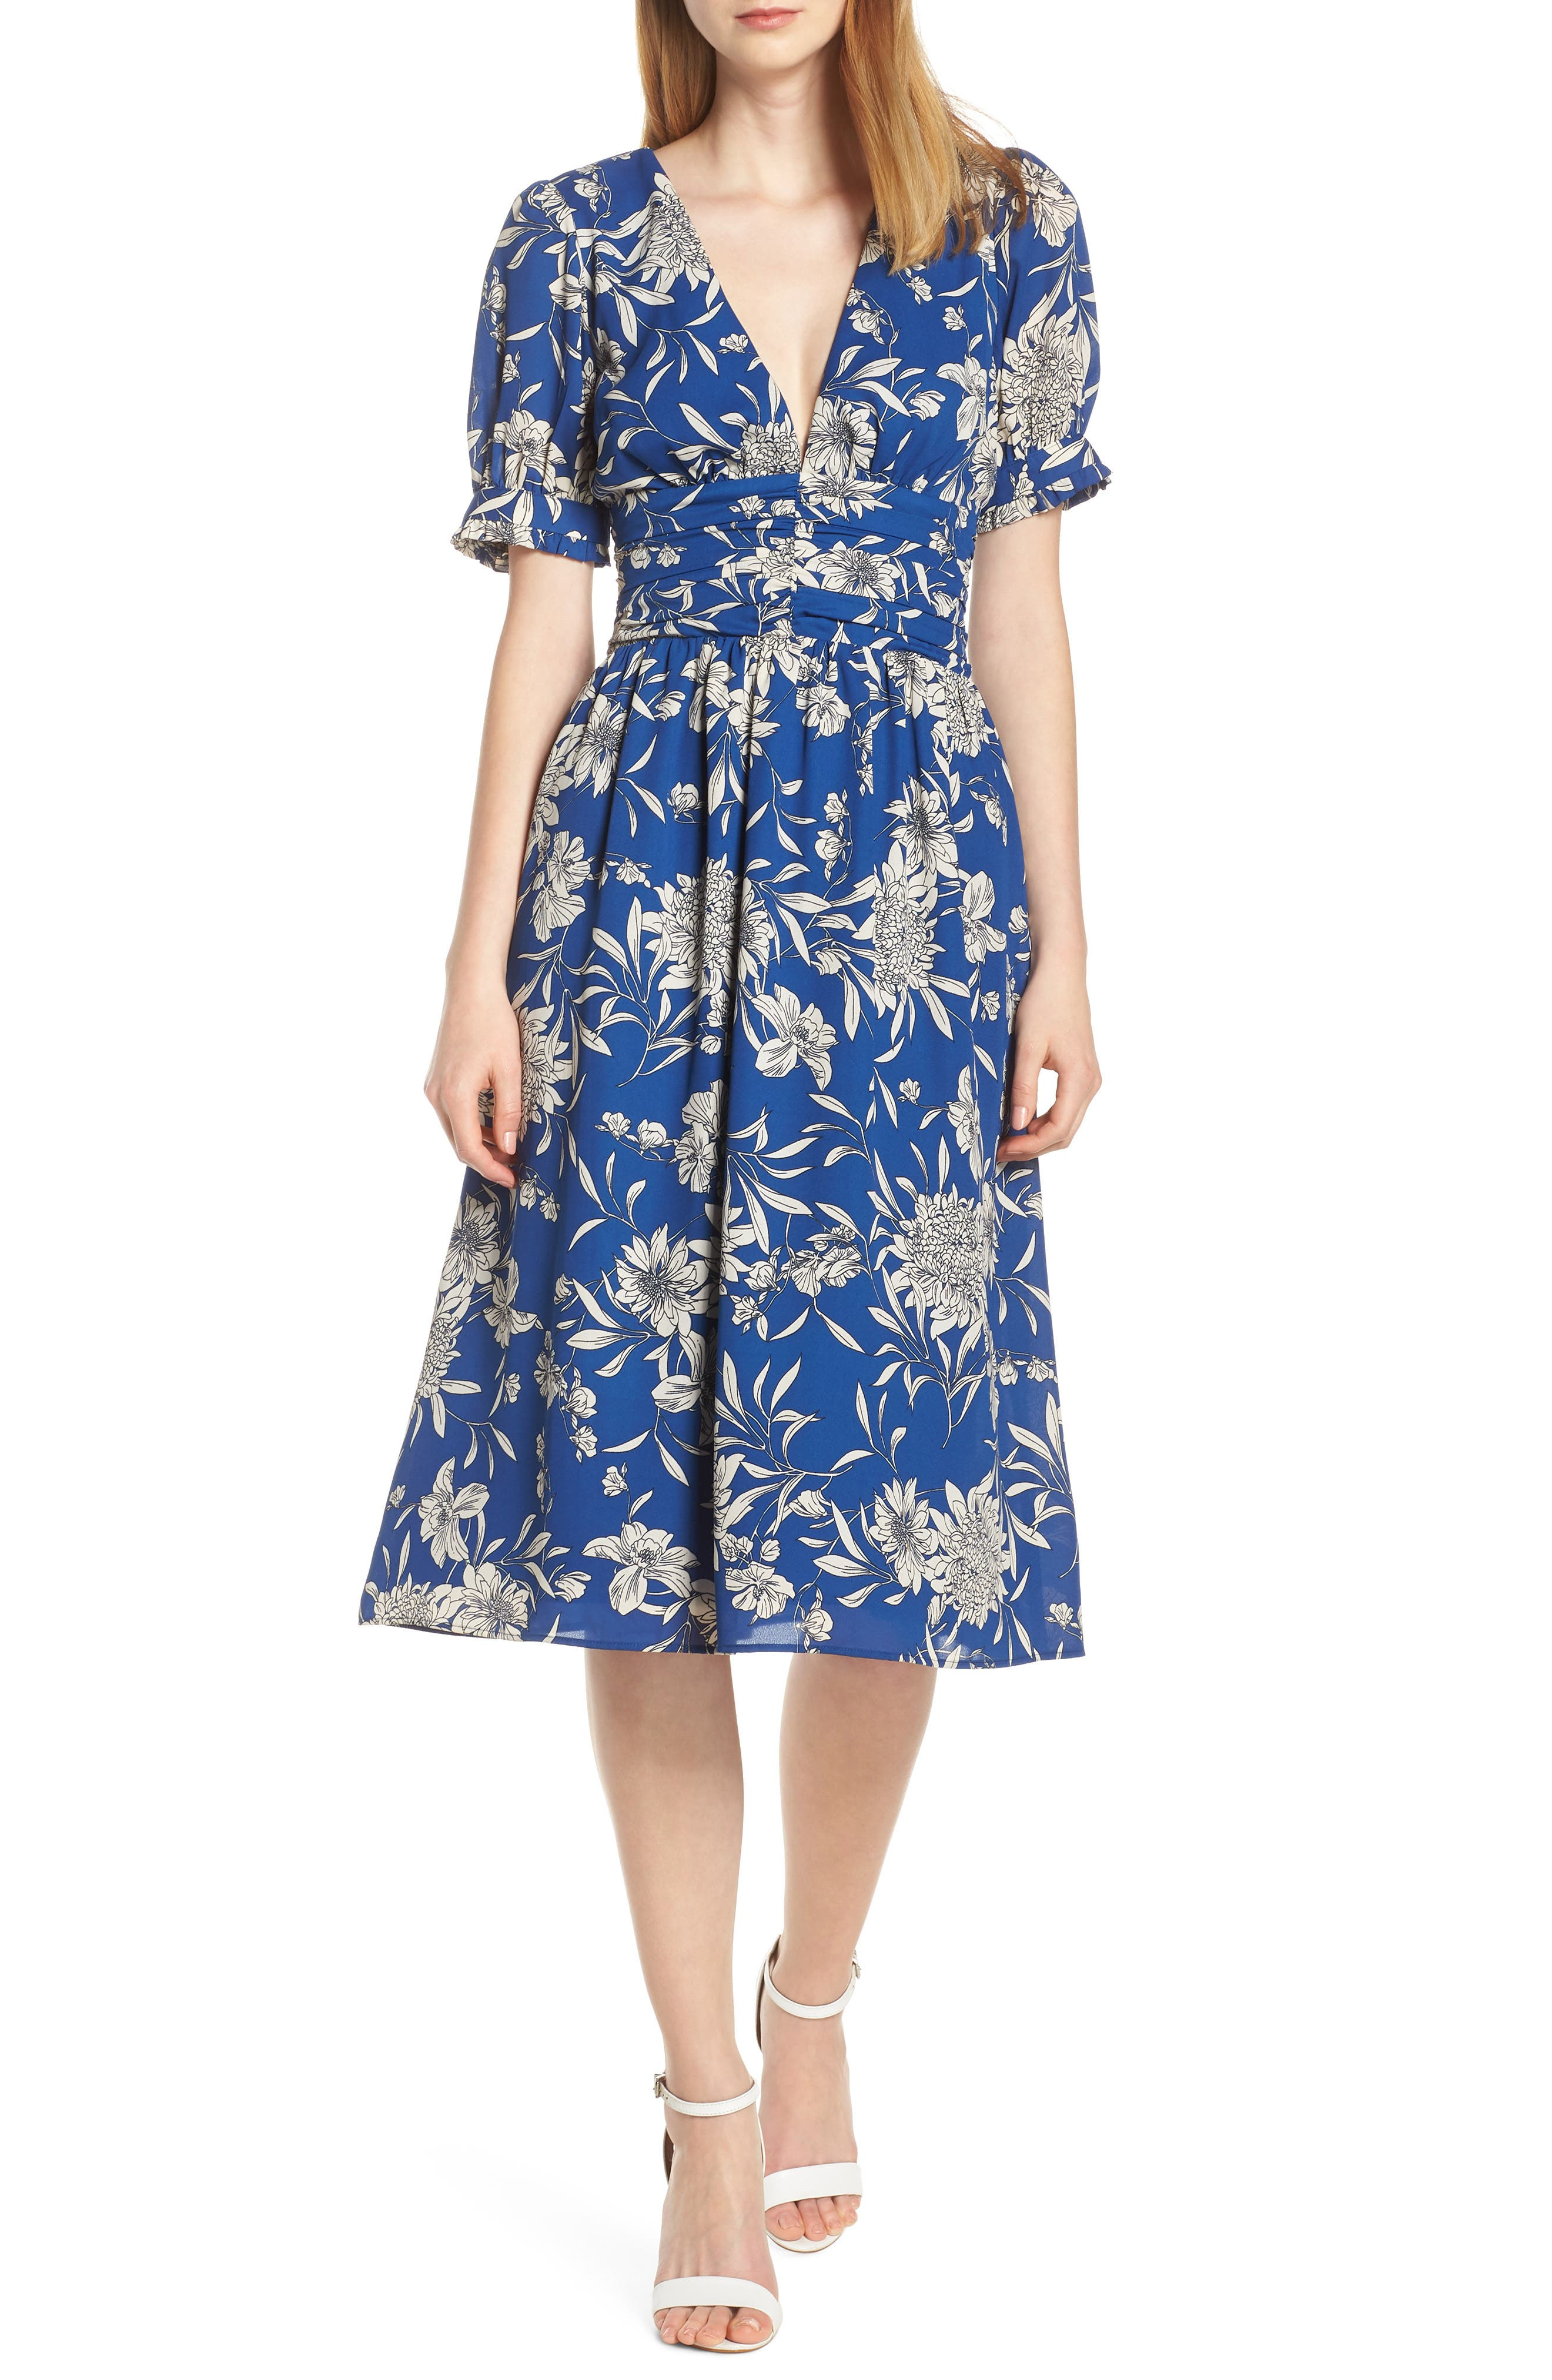 19 COOPER, Shirred Waist Midi Dress, Main thumbnail 1, color, BLUE/ WHITE